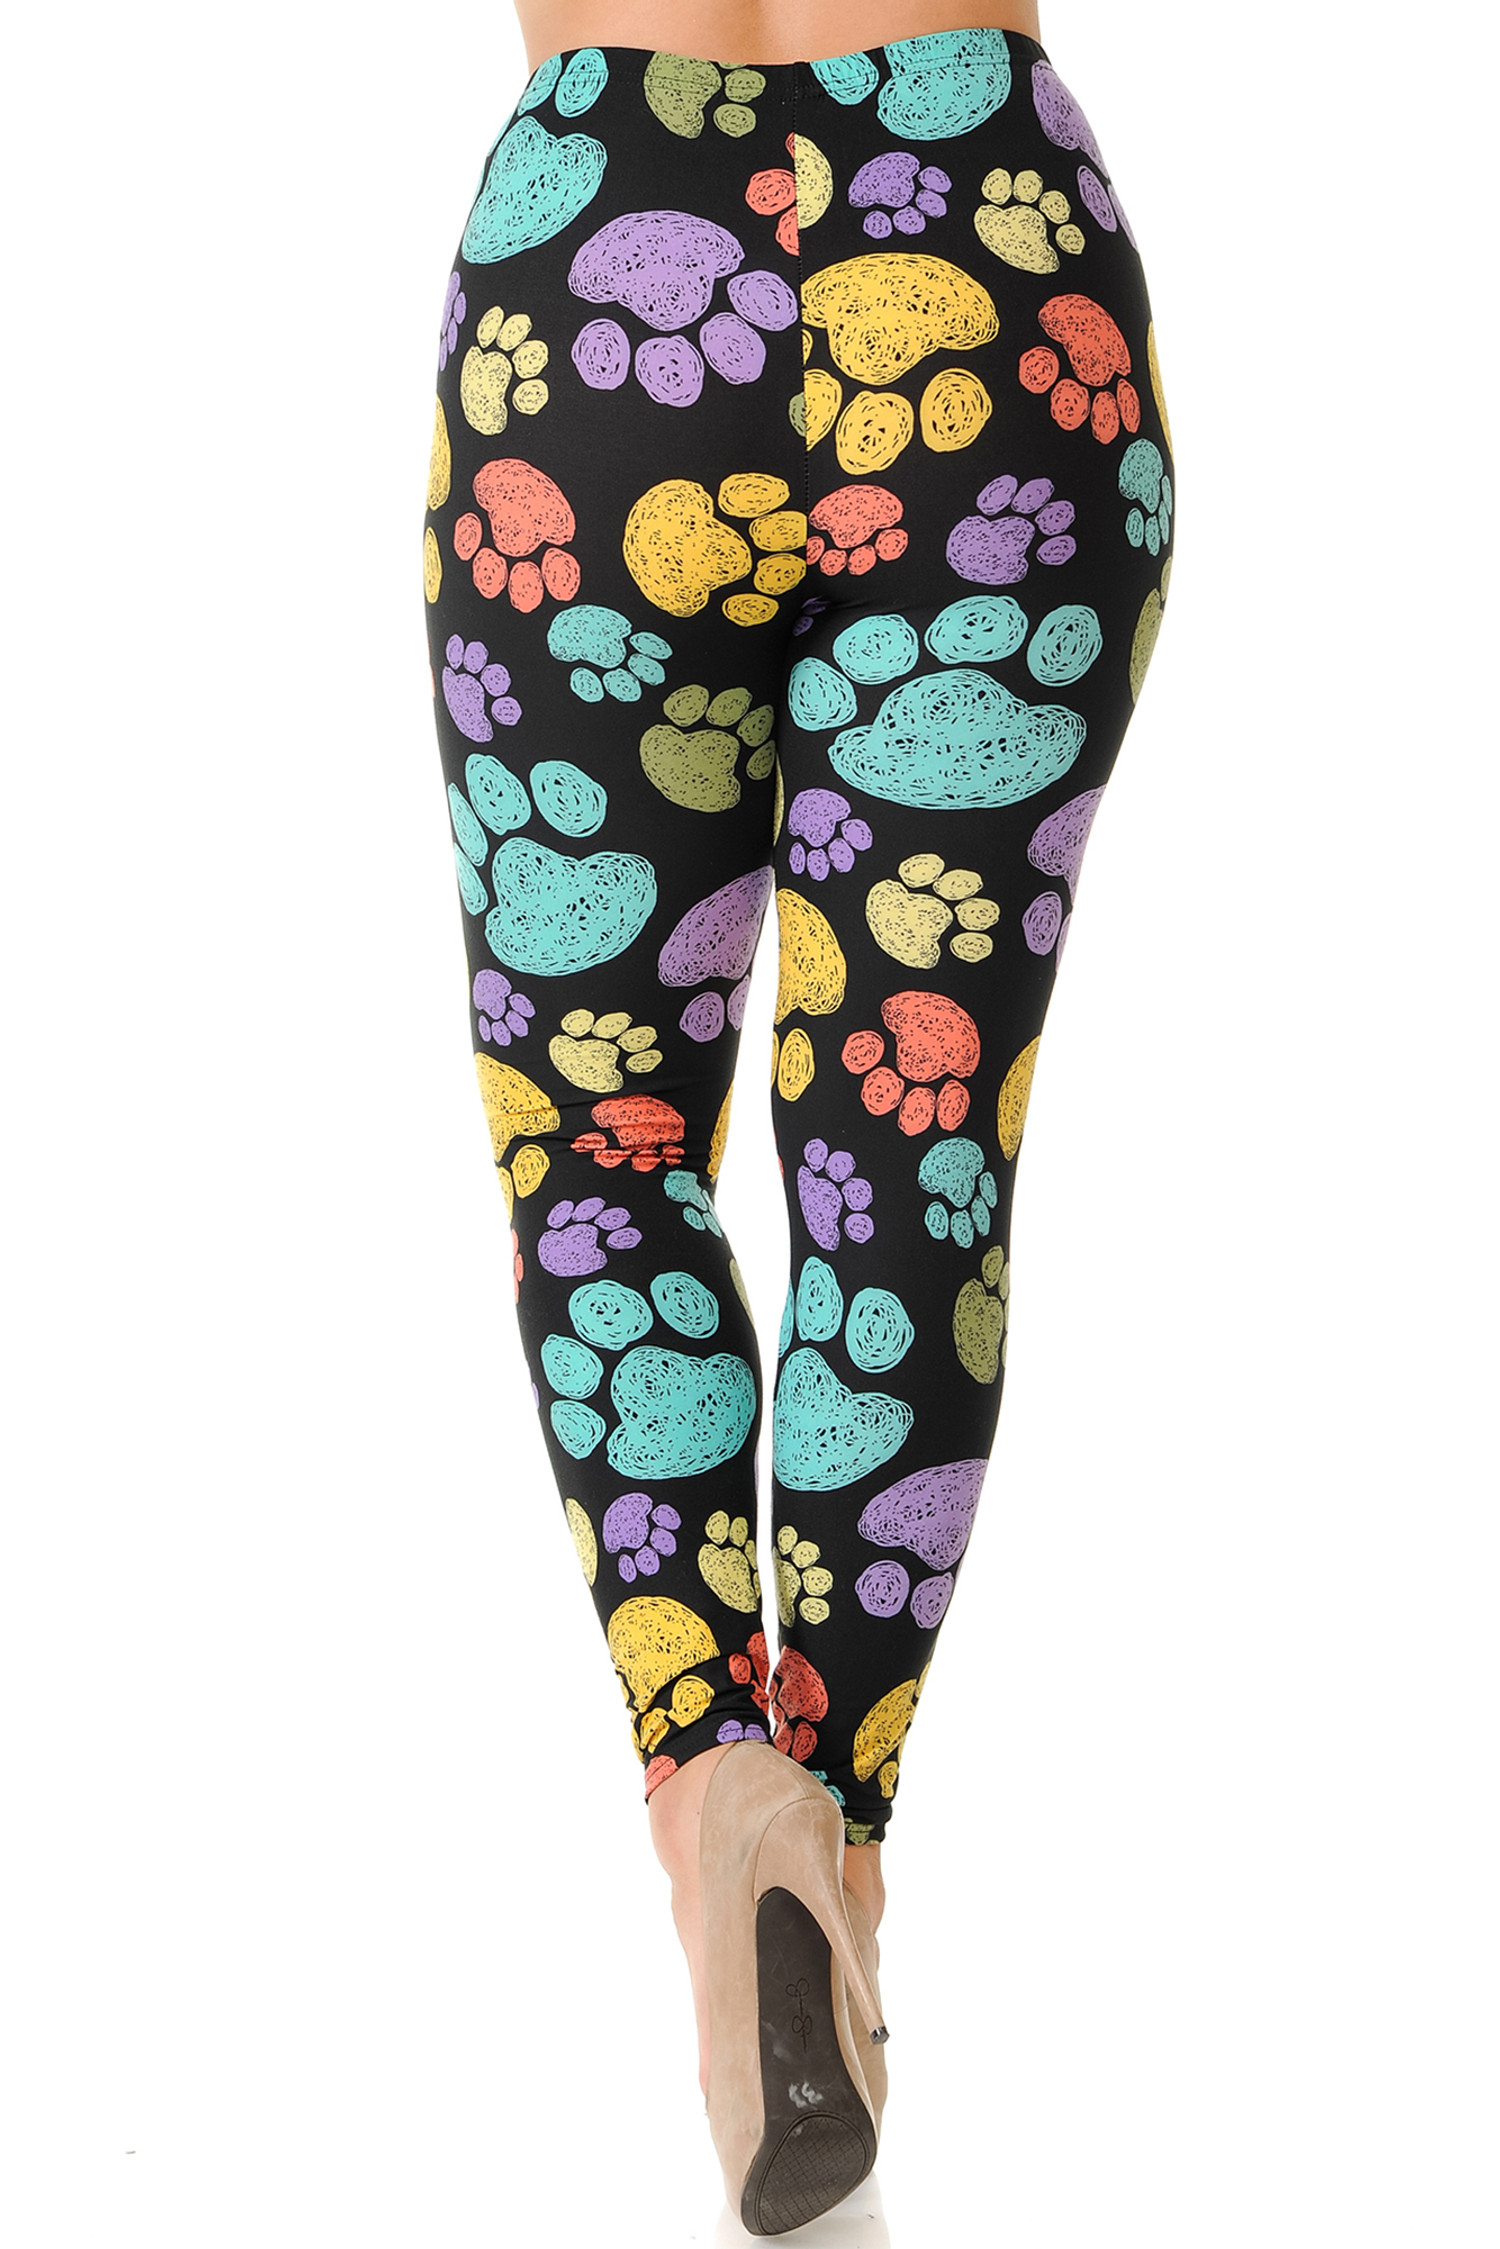 Rear view of Creamy Soft Colorful Paw Print Extra Plus Size Leggings - 3X-5X - USA Fashion™